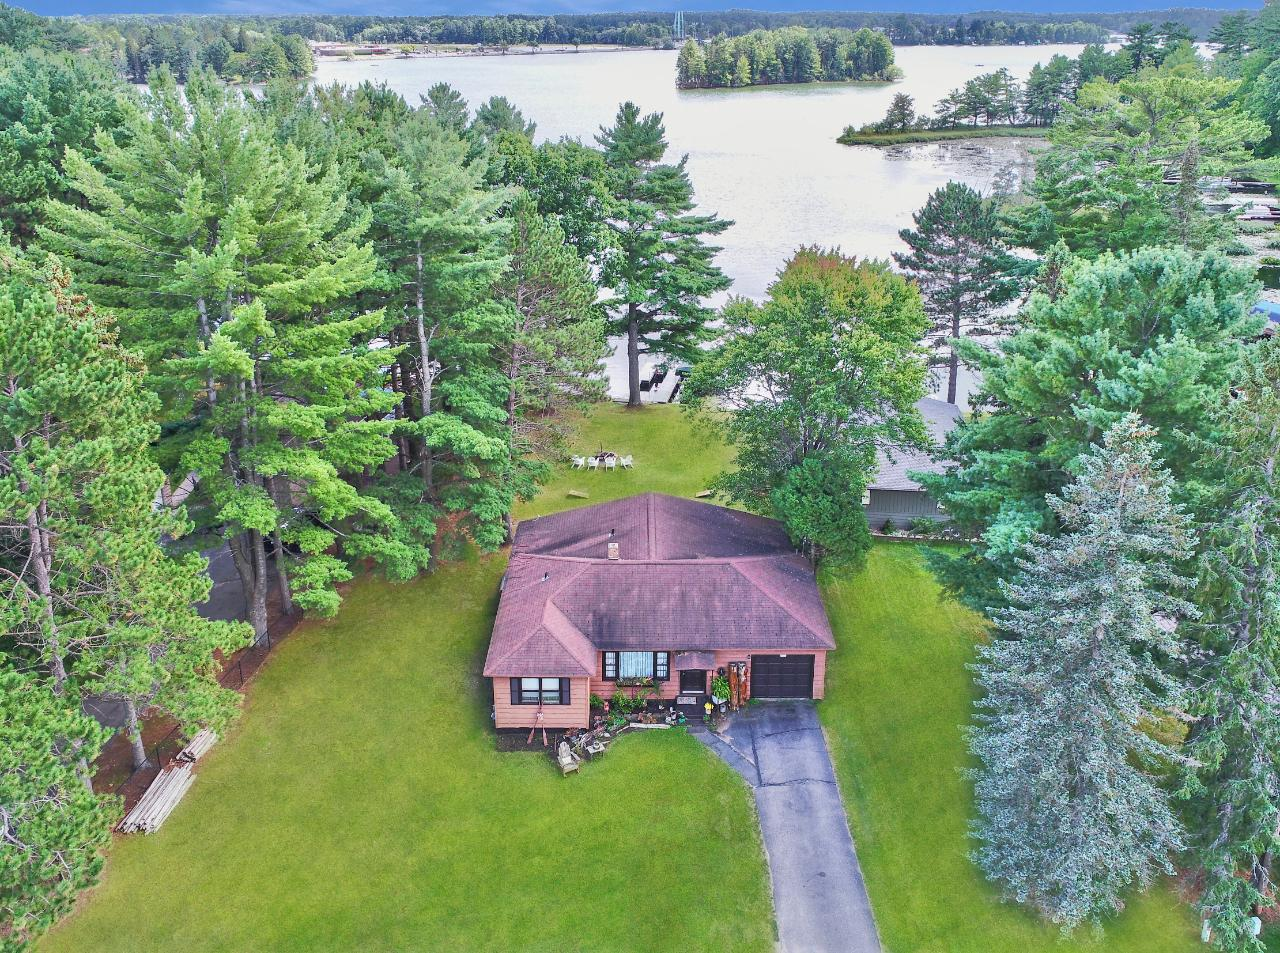 """Cozy cedar sided 2 BR, 2 BA home located on the much desired Minocqua Chain. This ranch-style home features 2 BR, 2 BA on the main floor, updated kitchen, new flooring, and an attached garage. The basement is unfinished and you could make what you'd like of it and add more finished sq footage. You can't beat this location with the option to walk or bike to town and hop on the Bearskin Trail! This home has ZERO steps to the lake and is pancake flat with southern exposure. There is a large yard with plenty of space to play bags, entertain, and enjoy your hot tub overlooking the lake. Enjoy the """"chain life"""" by boating to many bars and restaurants, watch the weekend water ski shows, or tie up to many of the state islands this chain as to offer!"""